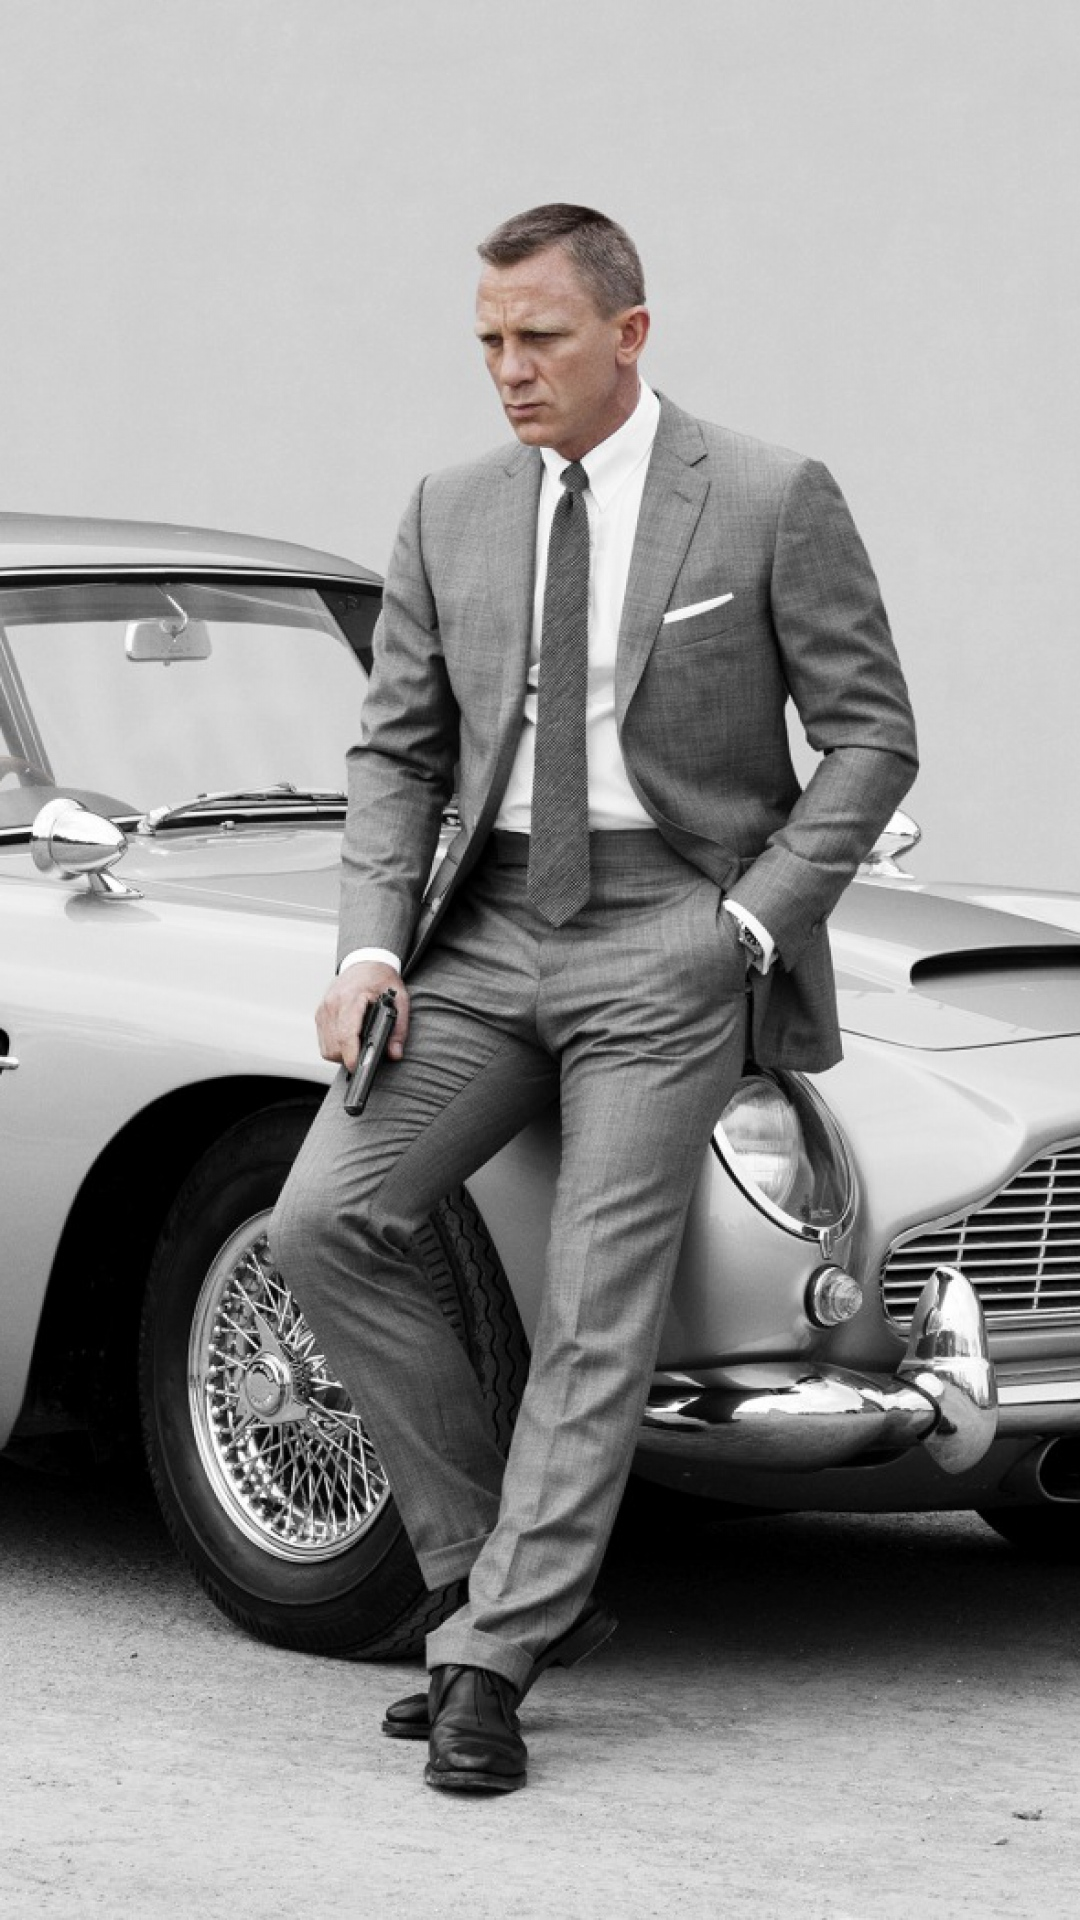 Free Wallpaper Old Cars James Bond Spectre Wallpapers